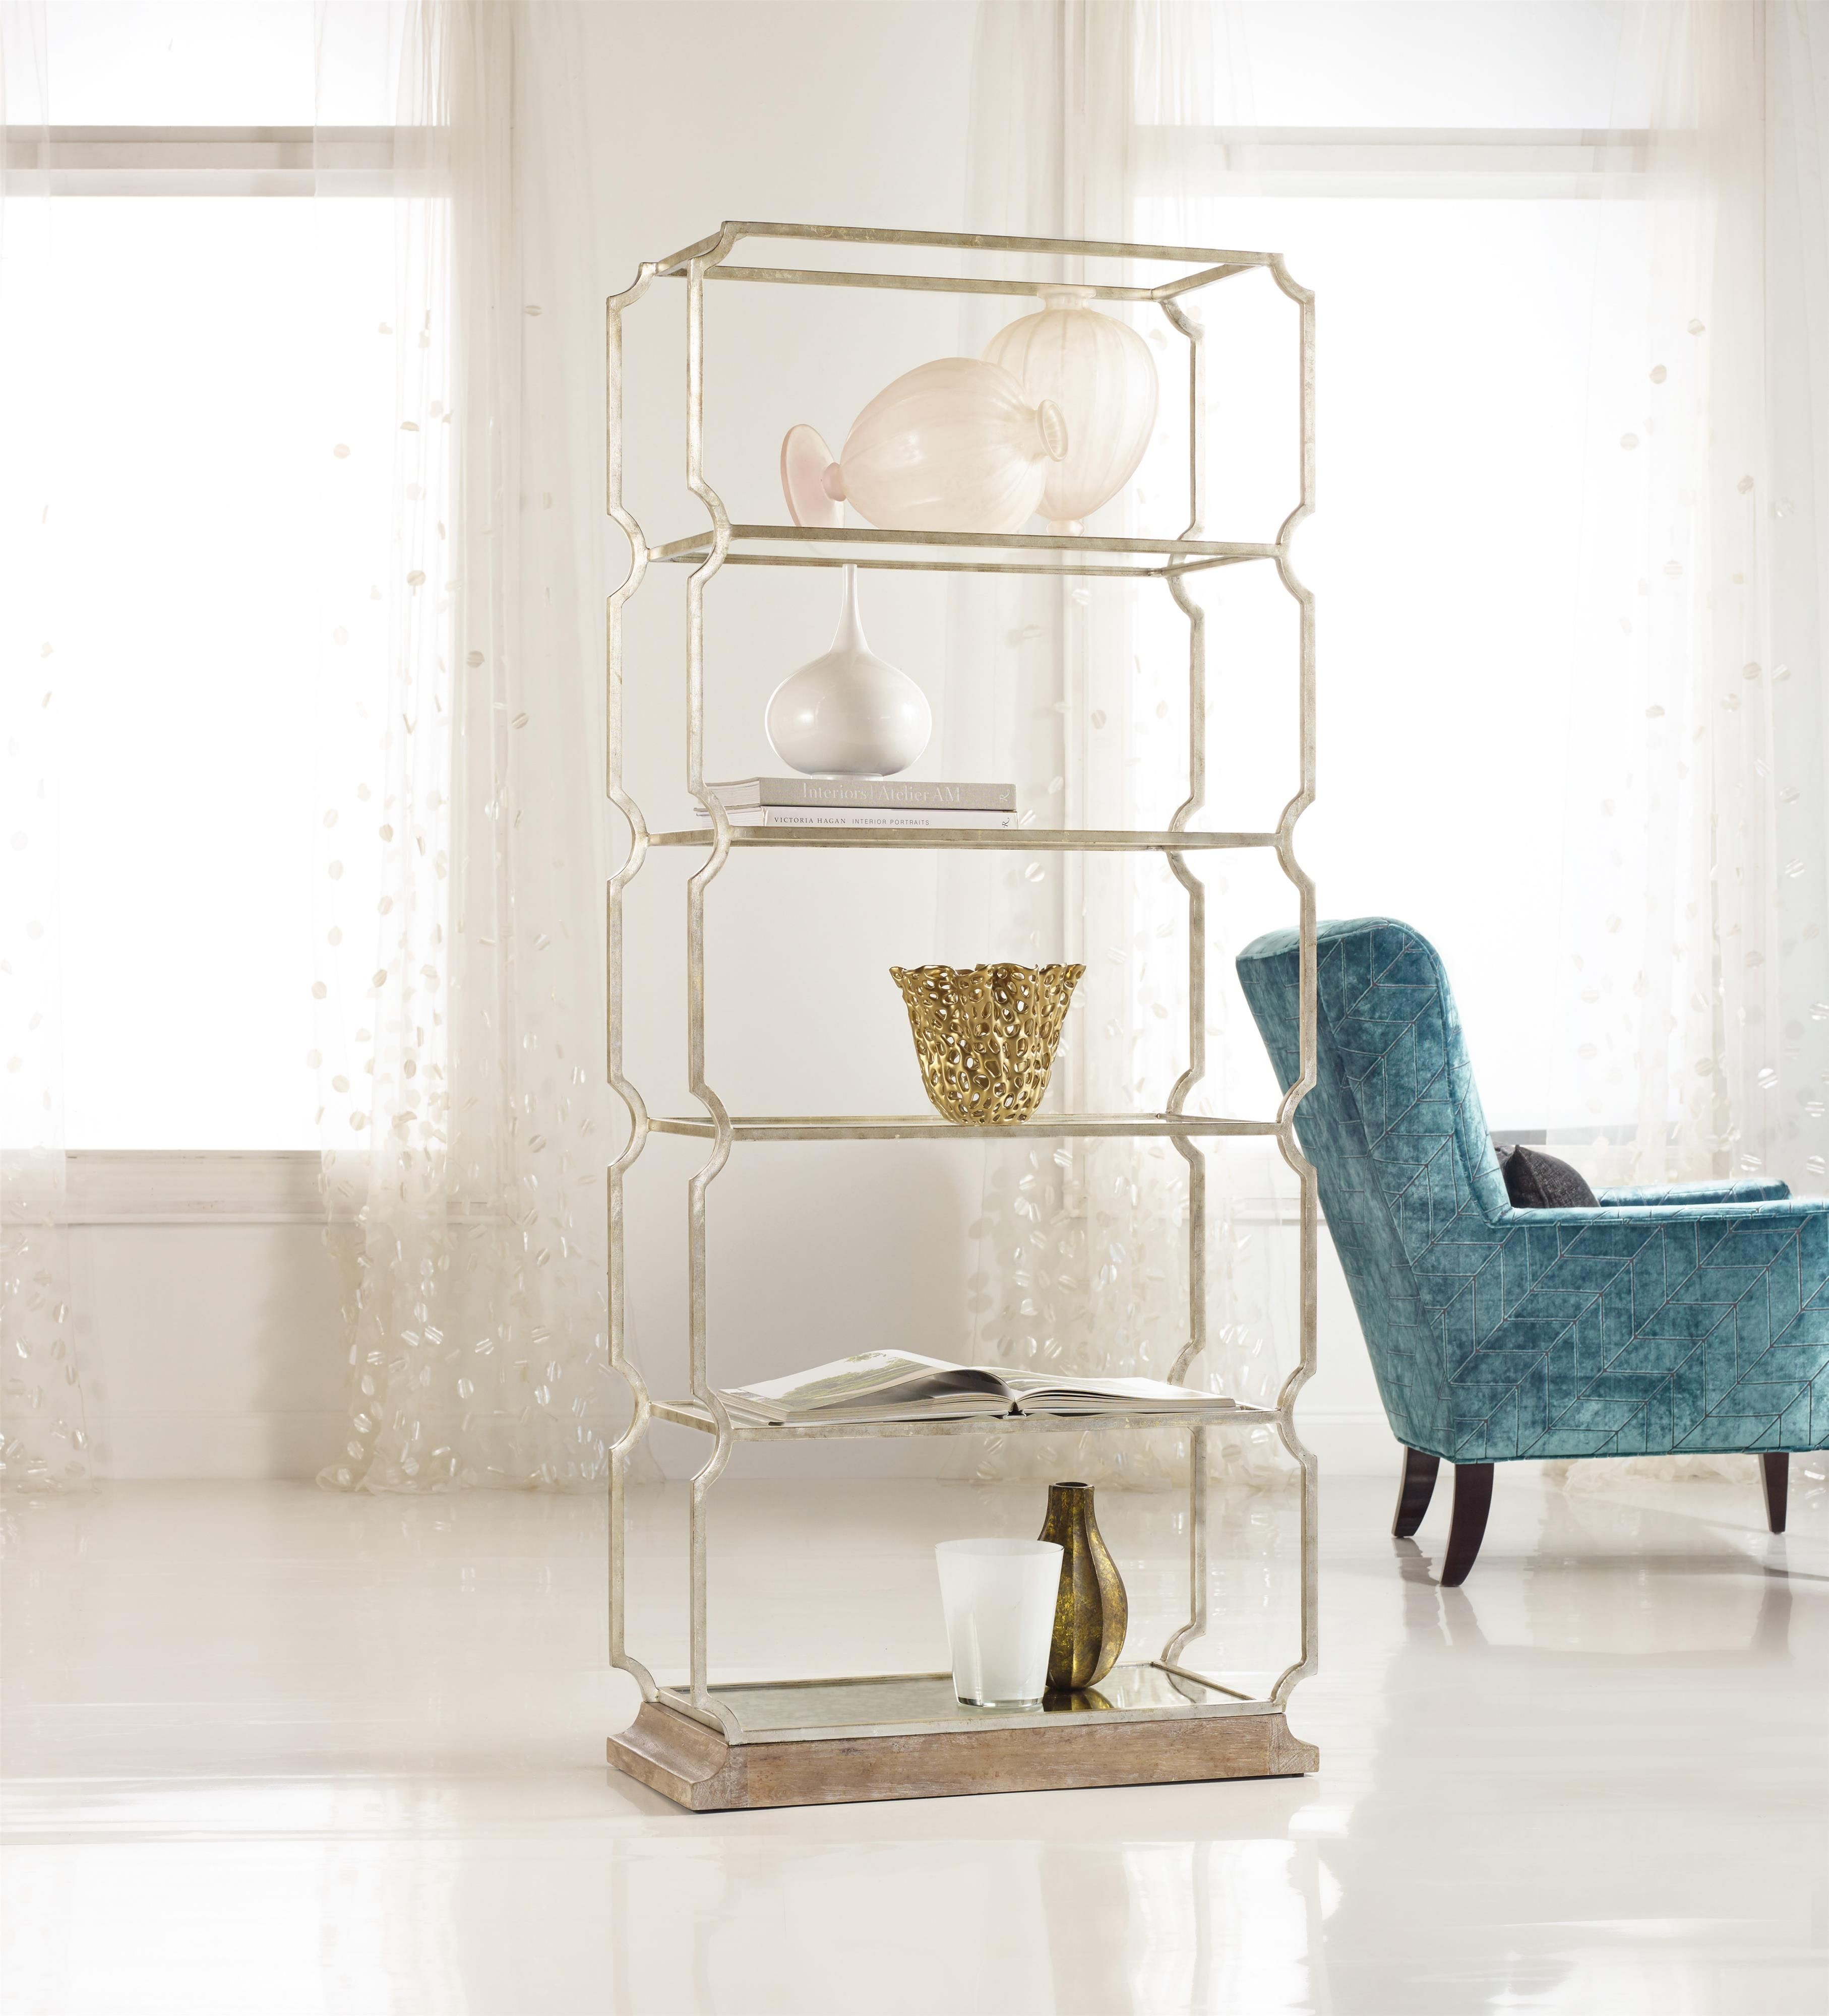 Rustic yet elegant, the Carter metal etagere offers stylish display space. The piece has a cast iron frame with wood base for a vintage look. Use the piece in any room for an eclectic, one-of-a-kind accent.